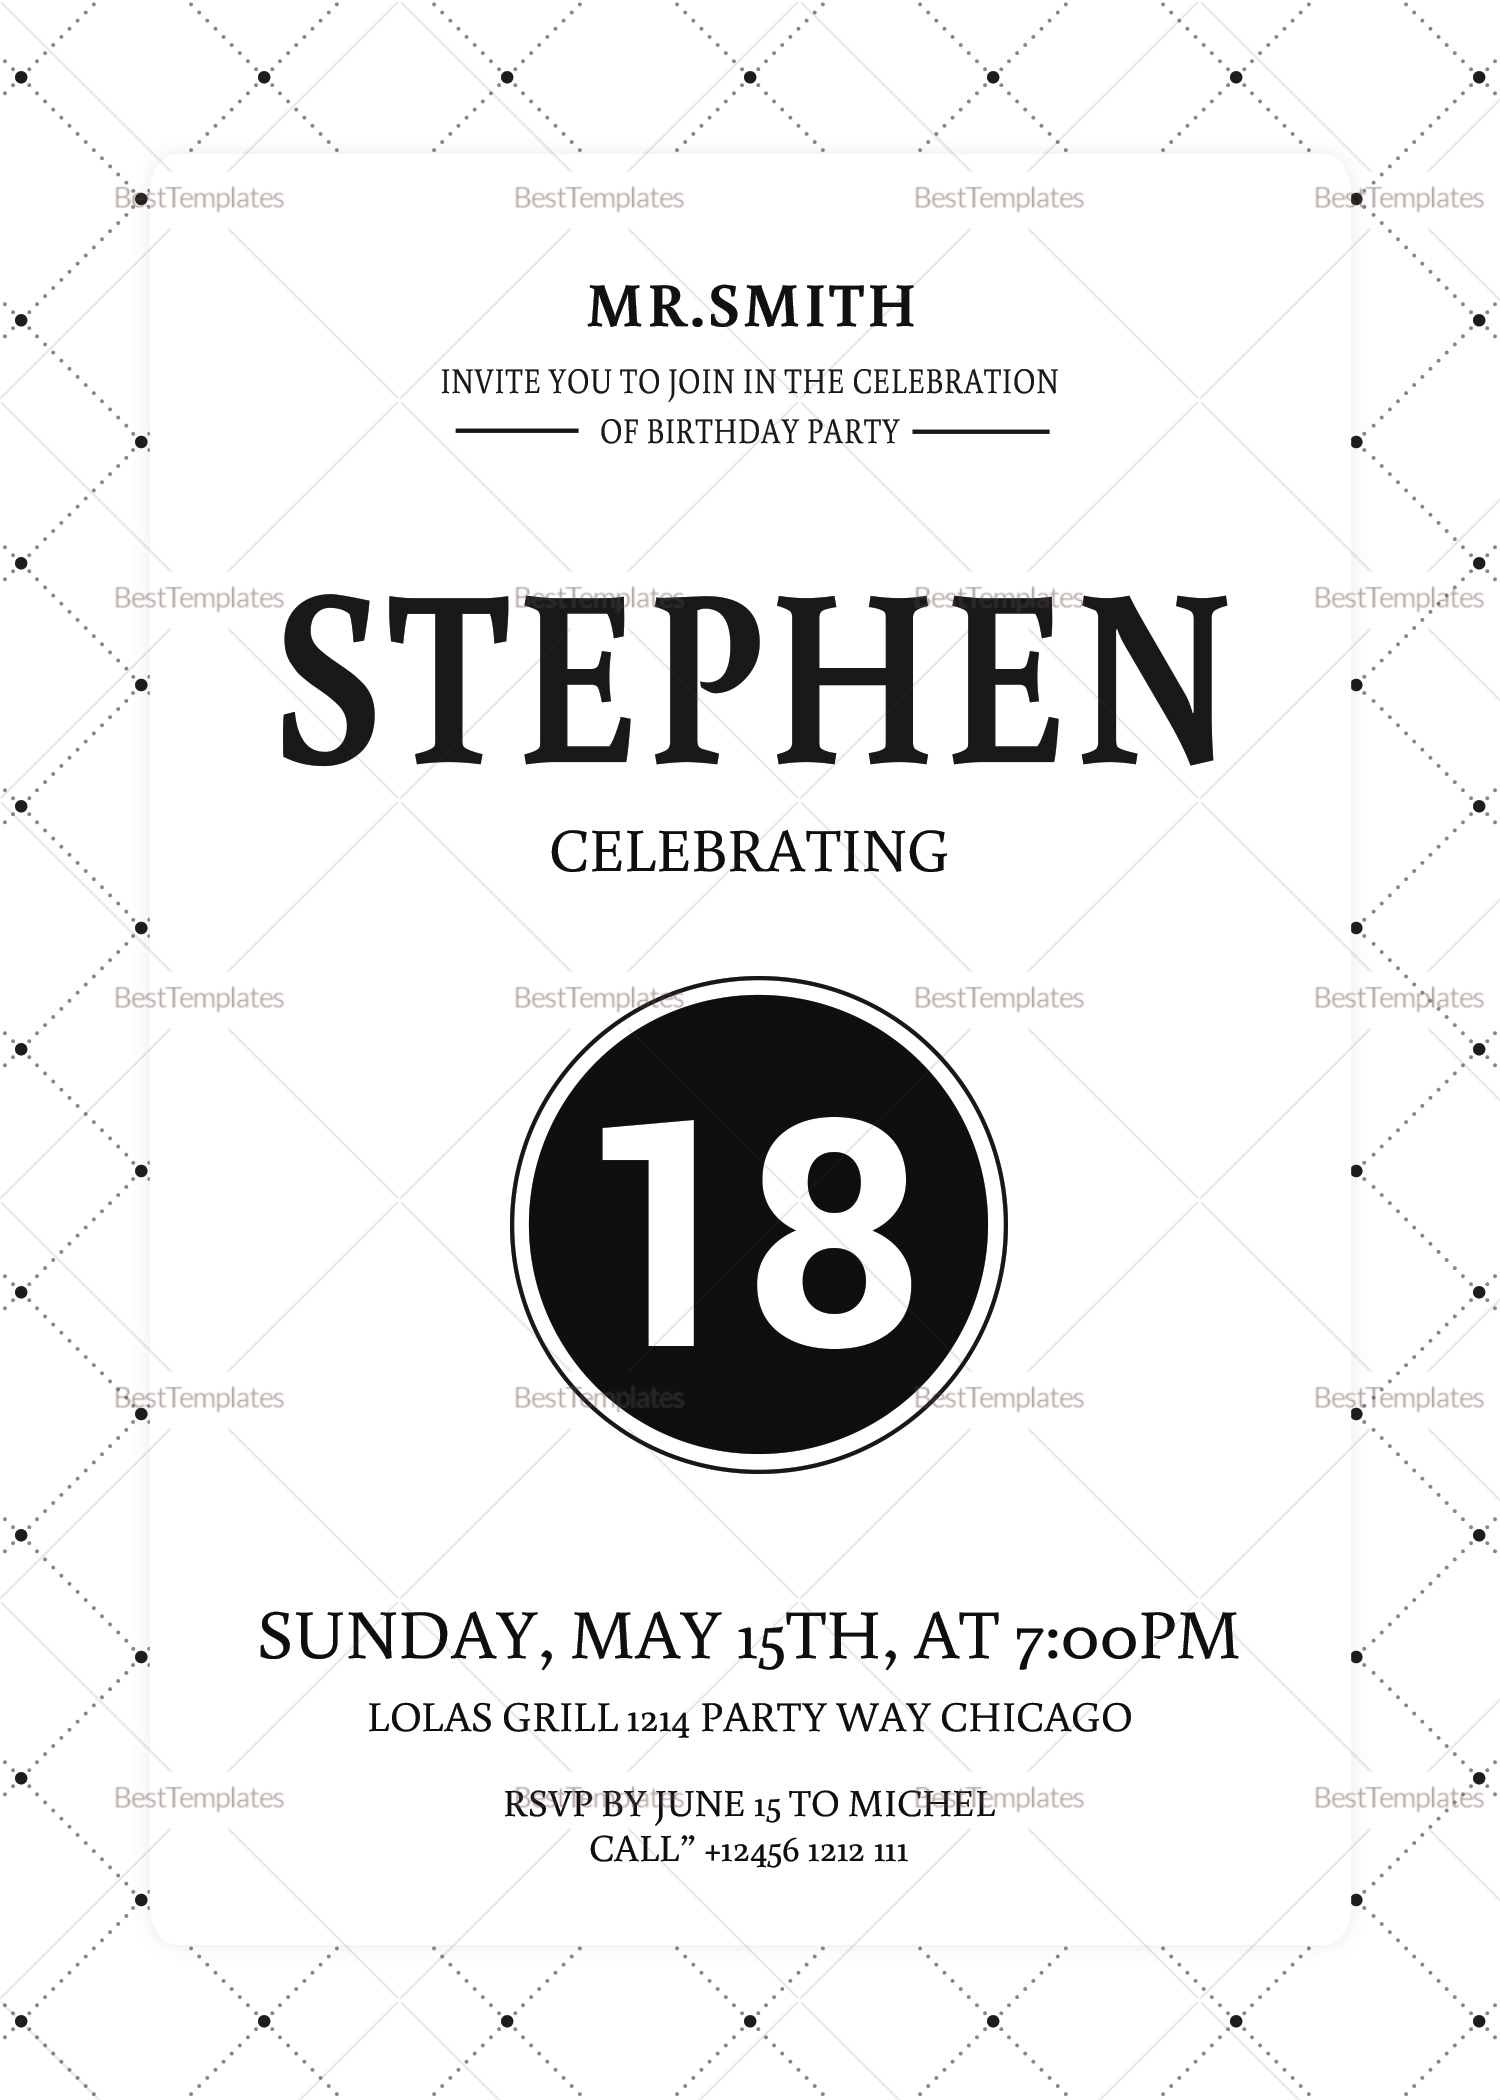 18th Birthday Party Invitation Design Template in Word PSD – Invitation for 18th Birthday